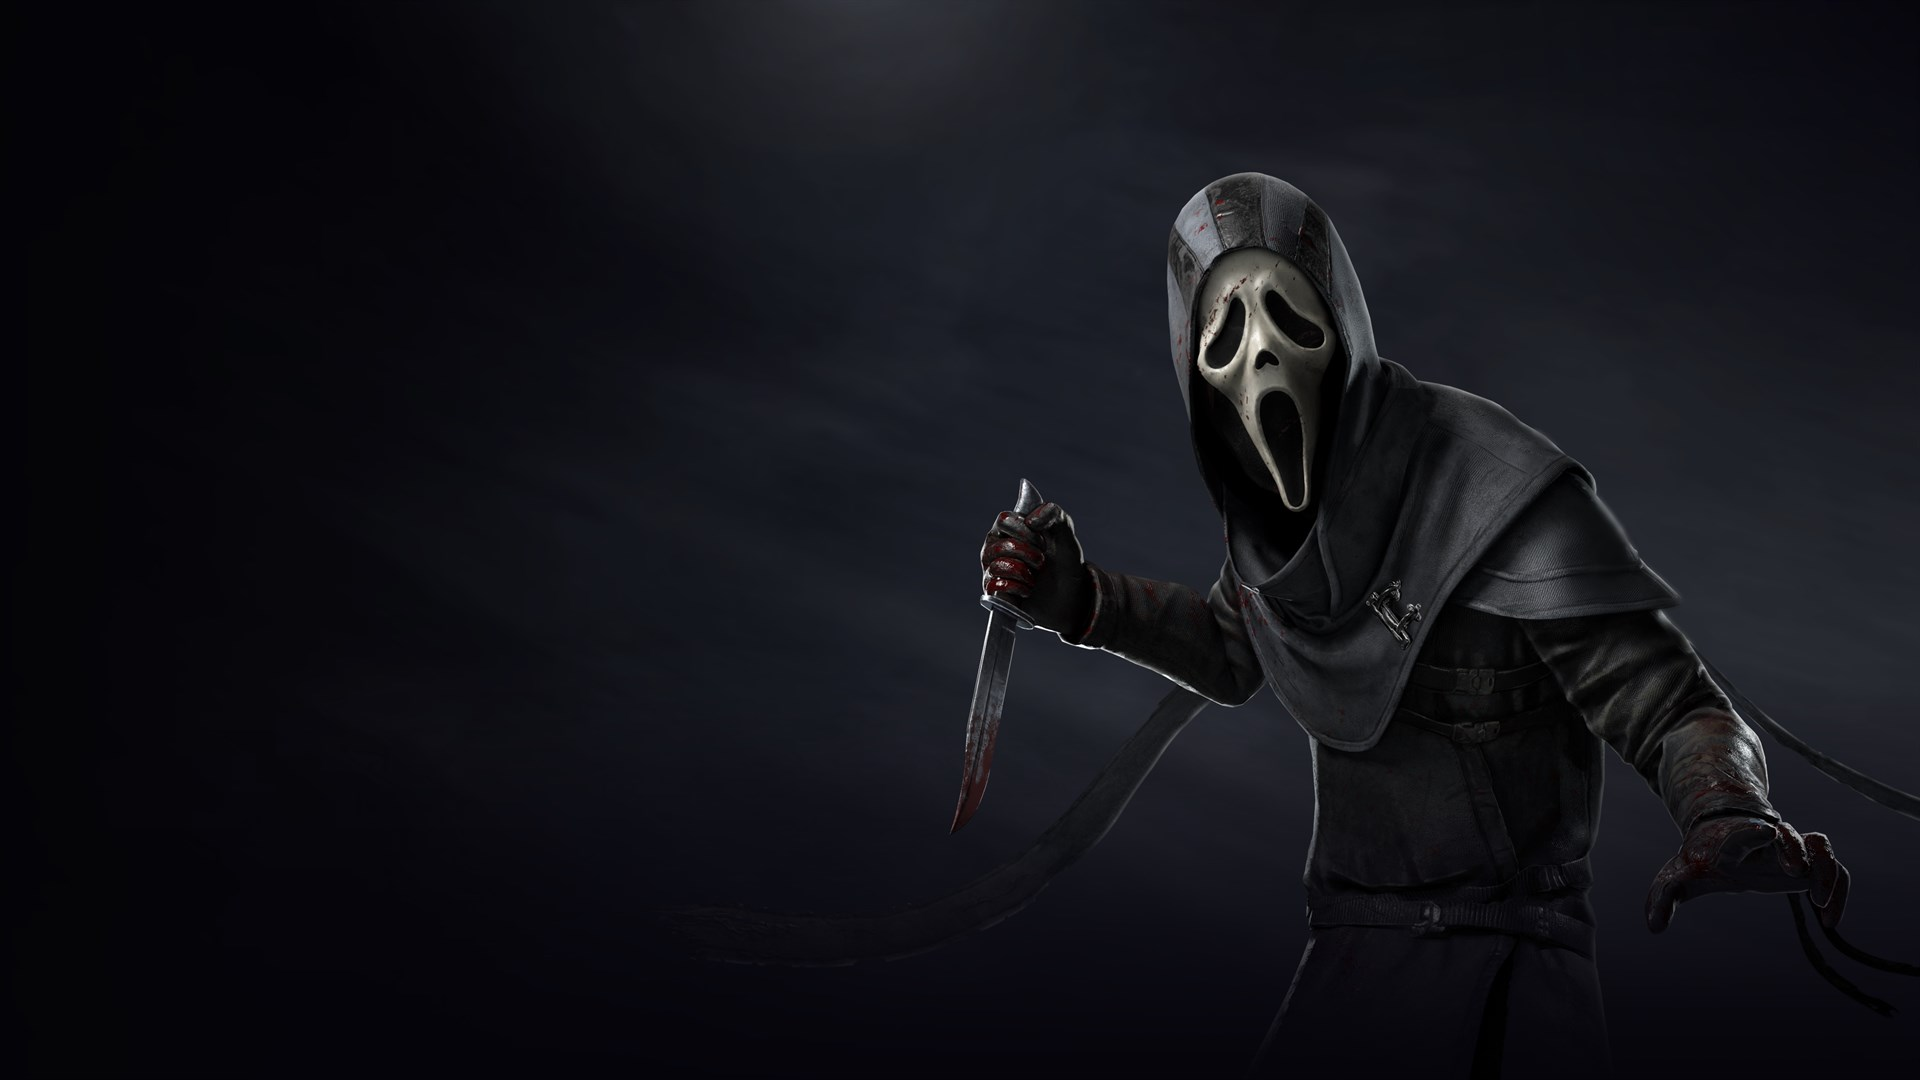 Become A Ghost Face Killer With The Latest Dead By Daylight Dlc